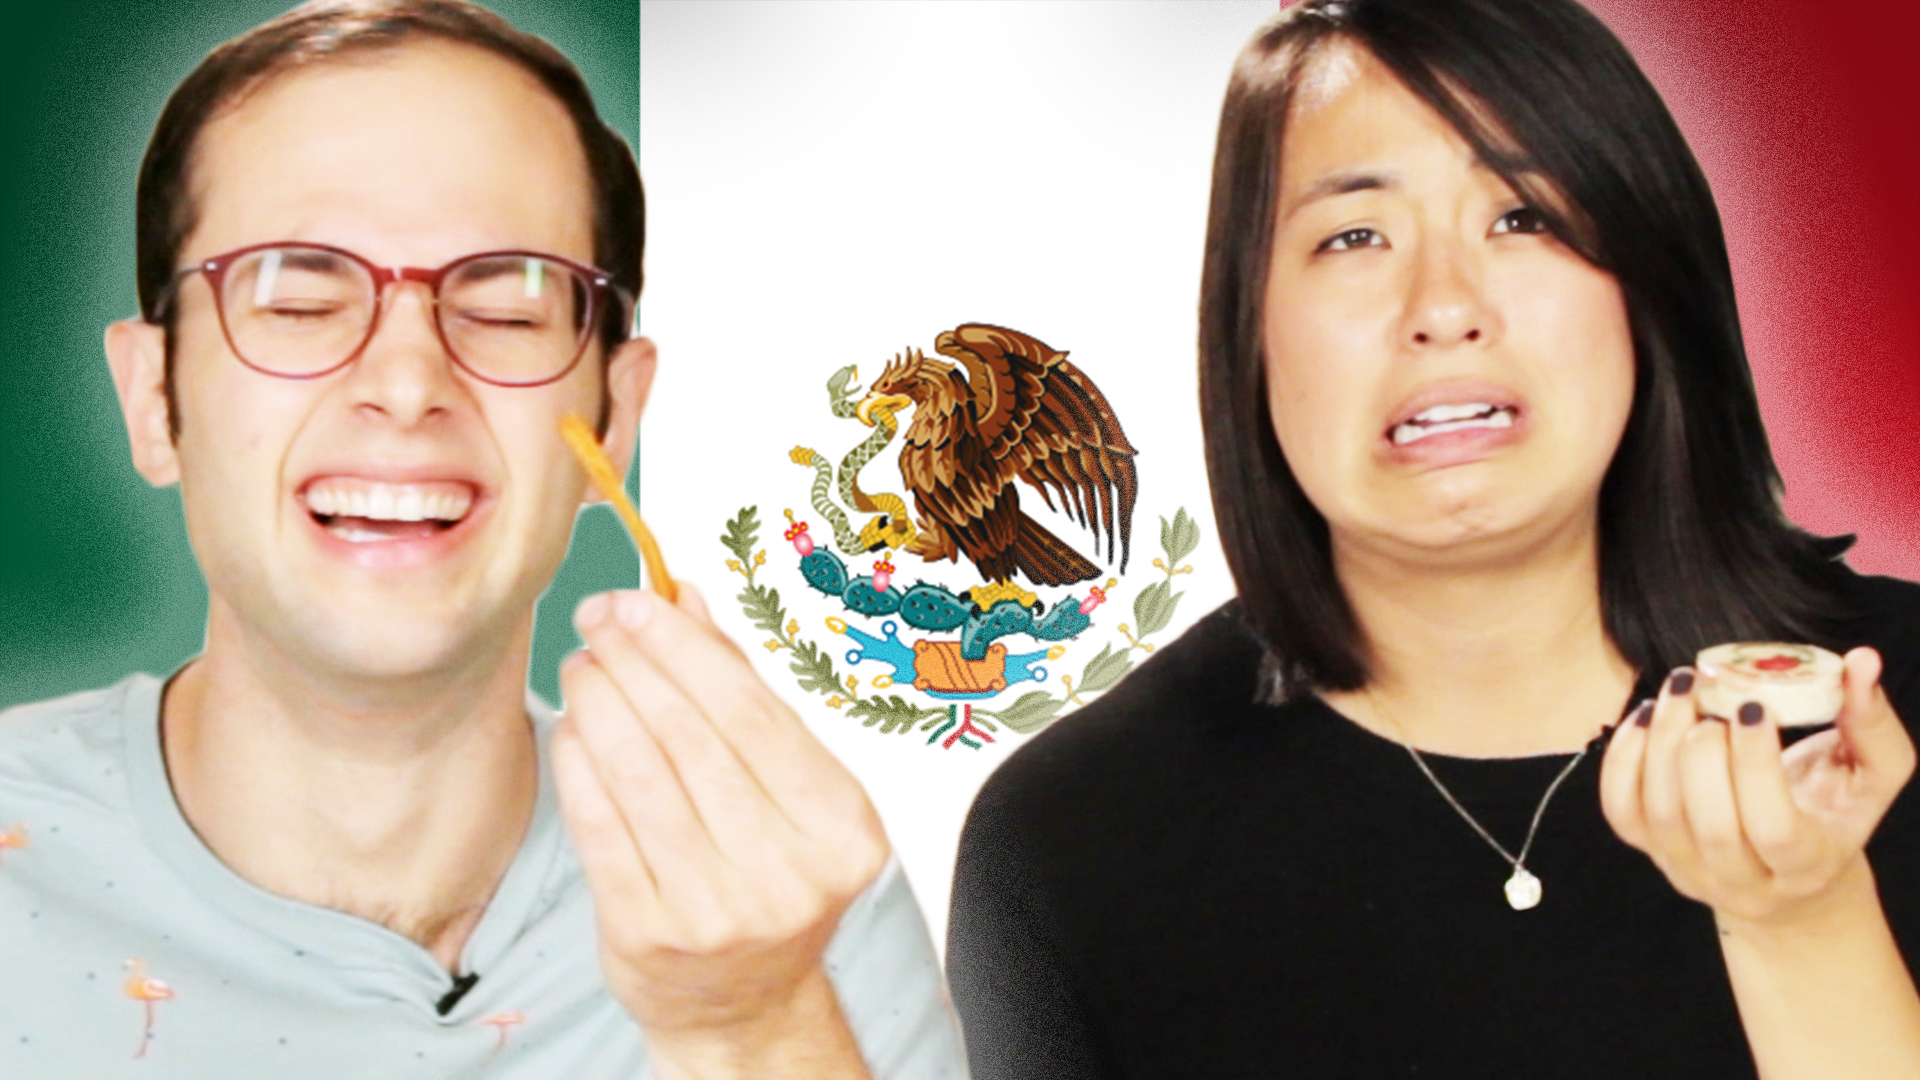 Americans Try Mexican Snacks For The First Time